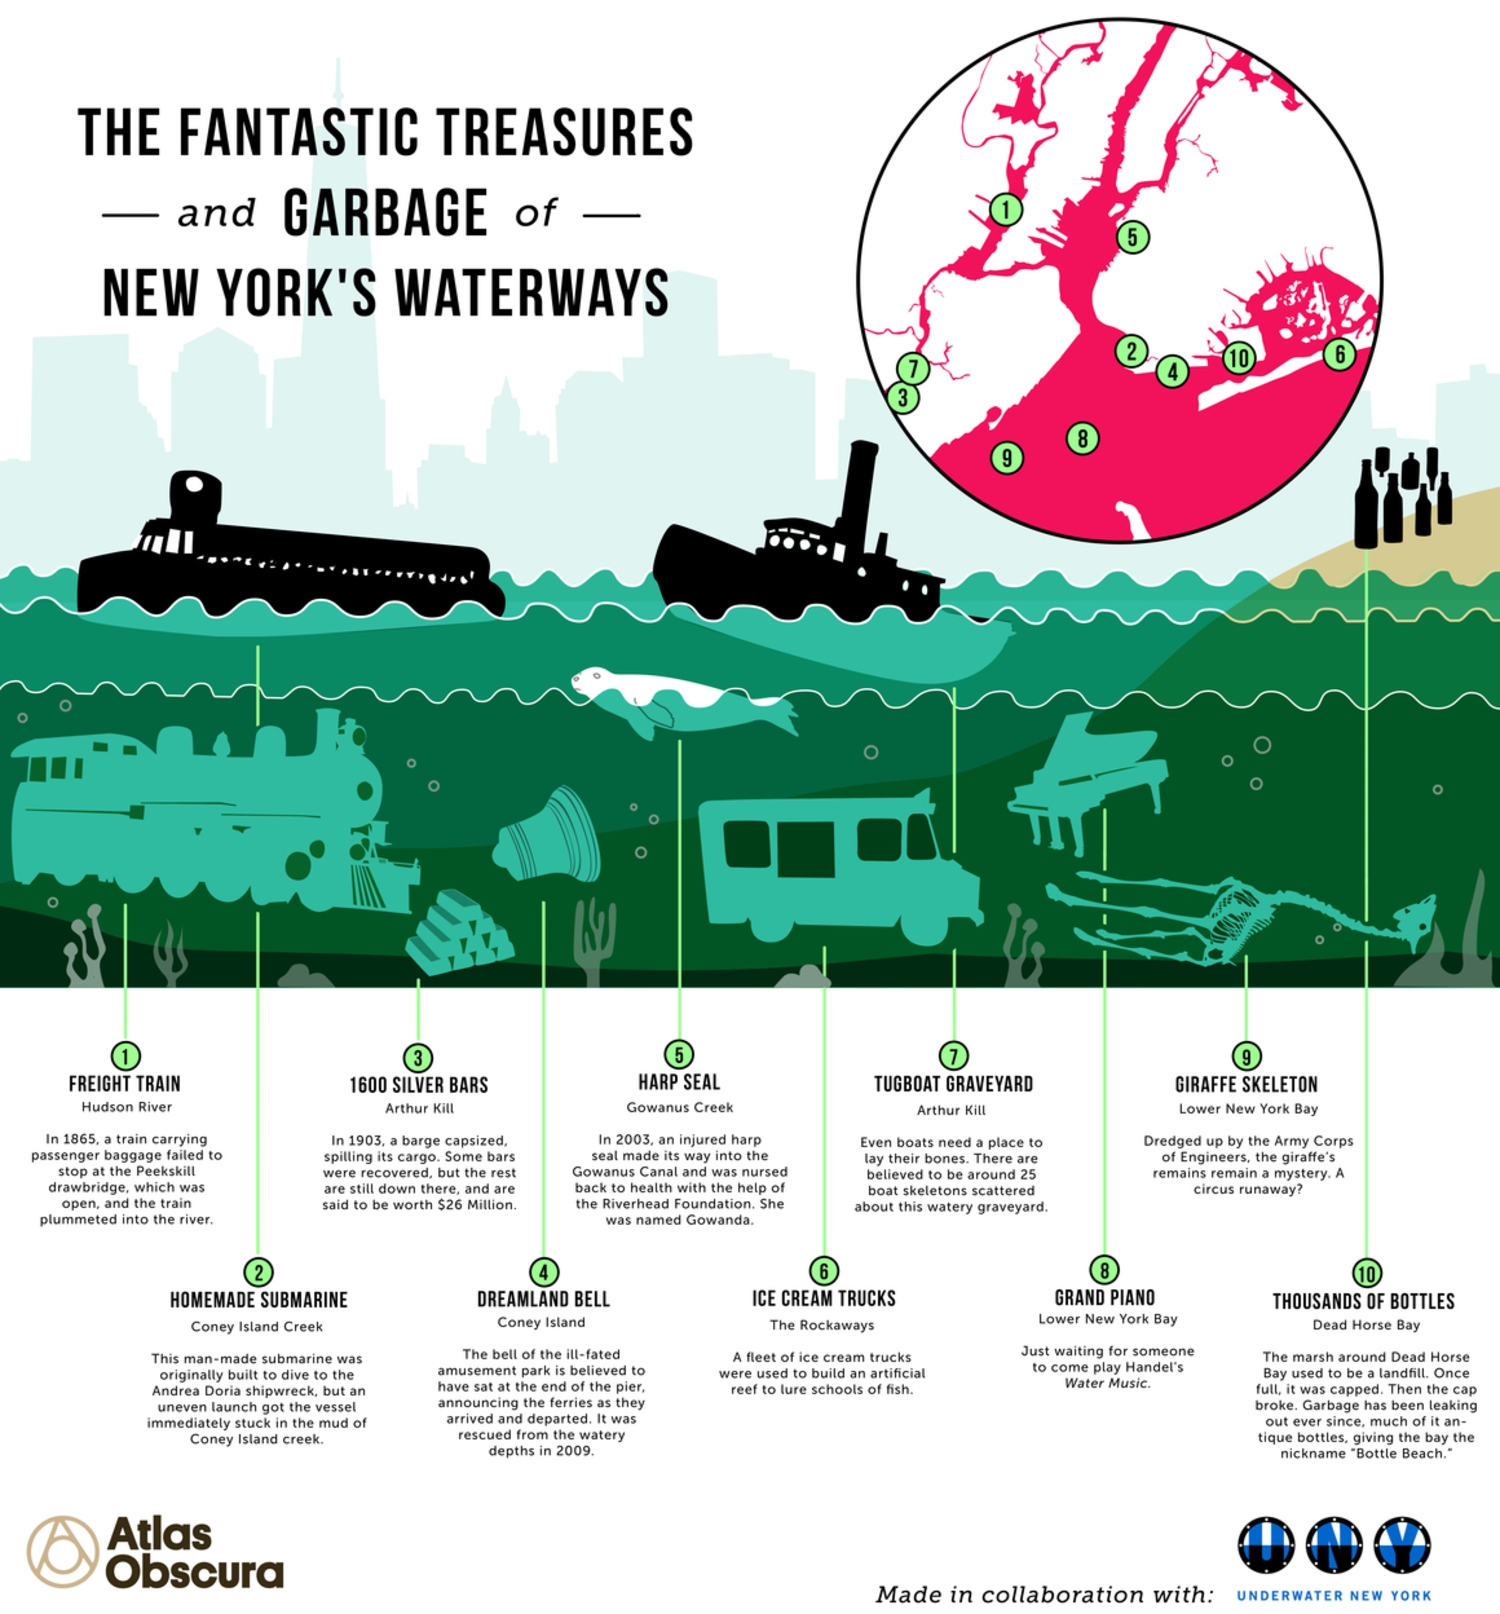 A Graphic Guide to All the Weird Things in New York City's Waterways